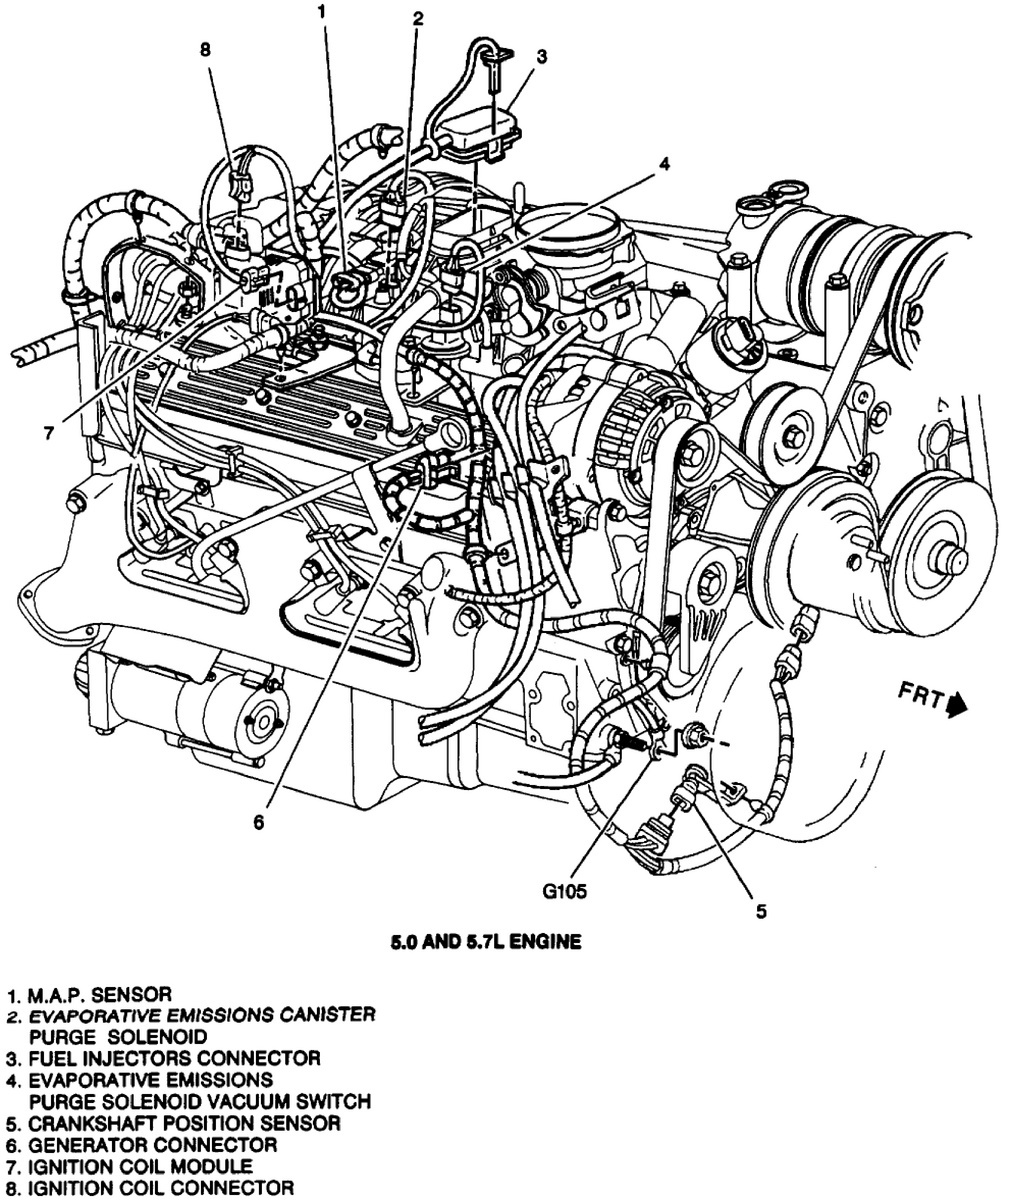 gmc 5 7 engine diagram enthusiast wiring diagrams u2022 rh rasalibre co  Location Speed Sensor for 2003 GMC Yukon 2002 GMC Yukon Replacement Parts